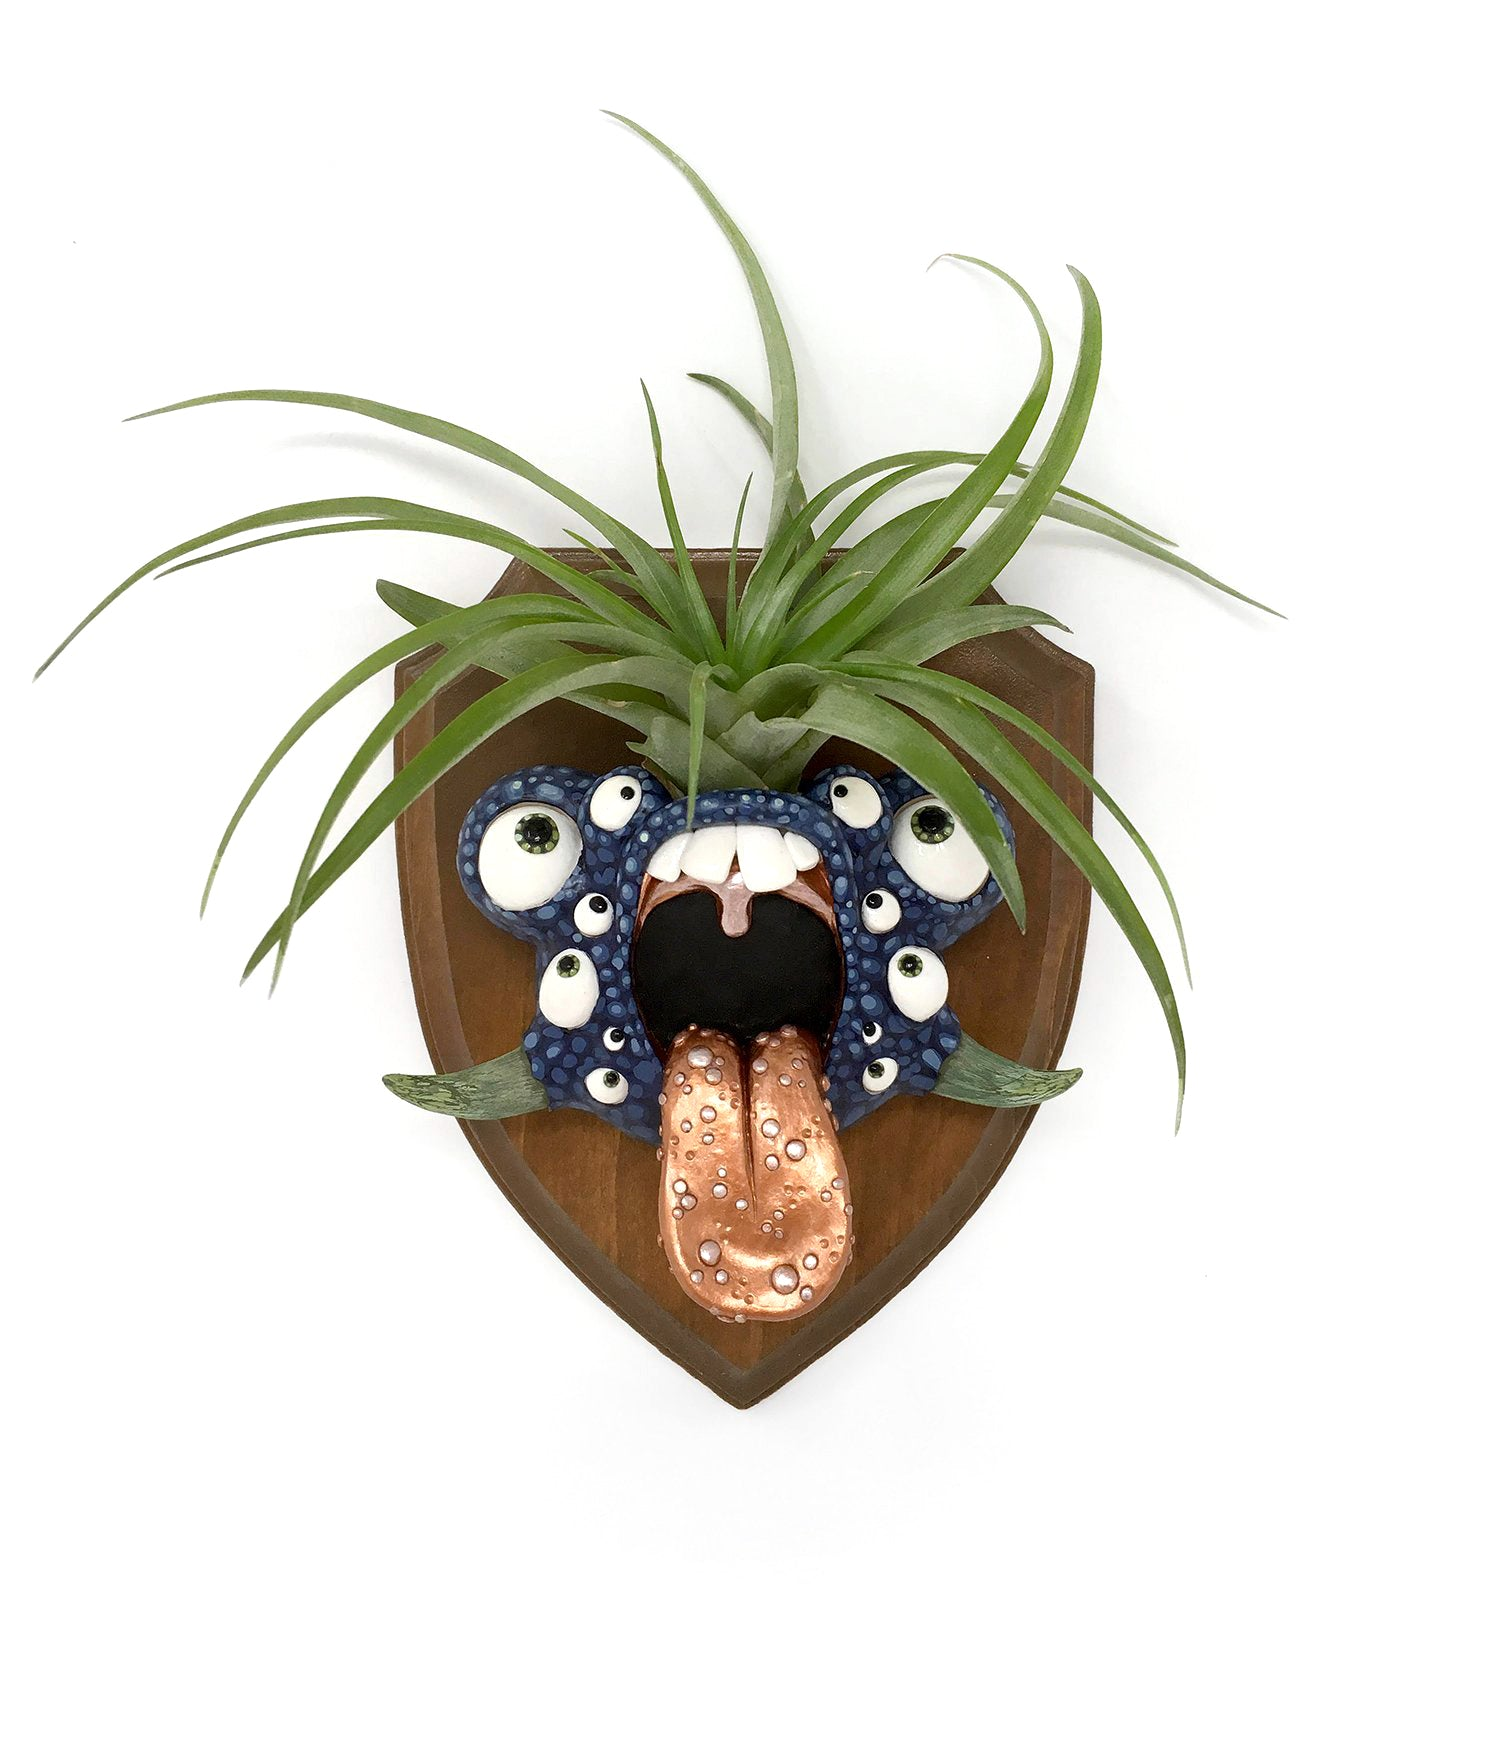 Brooke Duckart - Little beast with air plant hair